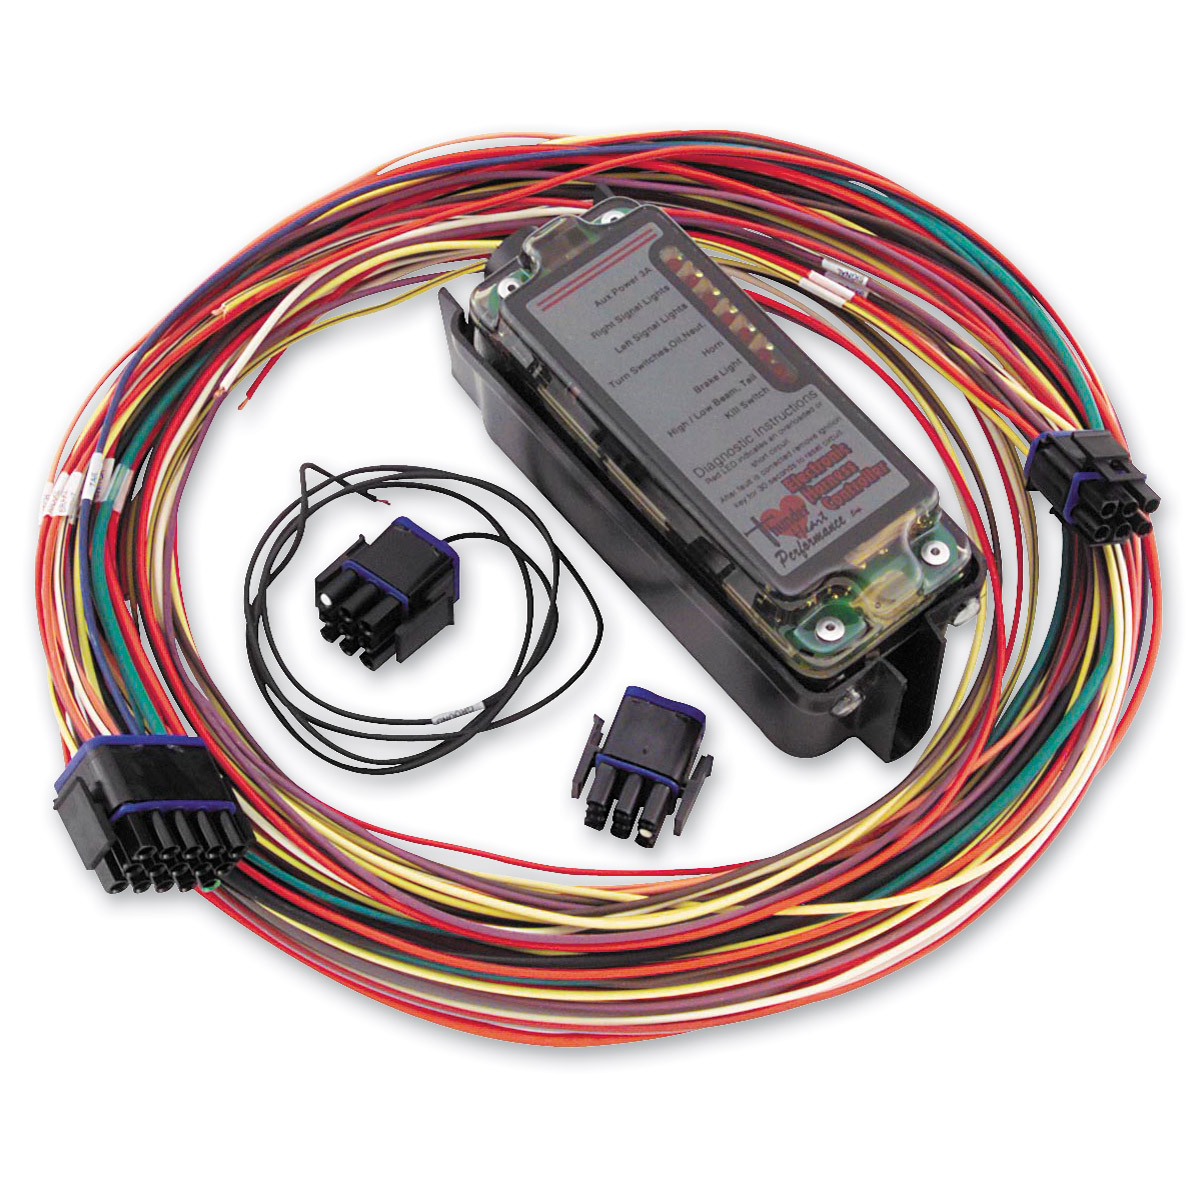 motorcycle wiring harness kits j p cycles thunder heart performance complete electronic harness controller